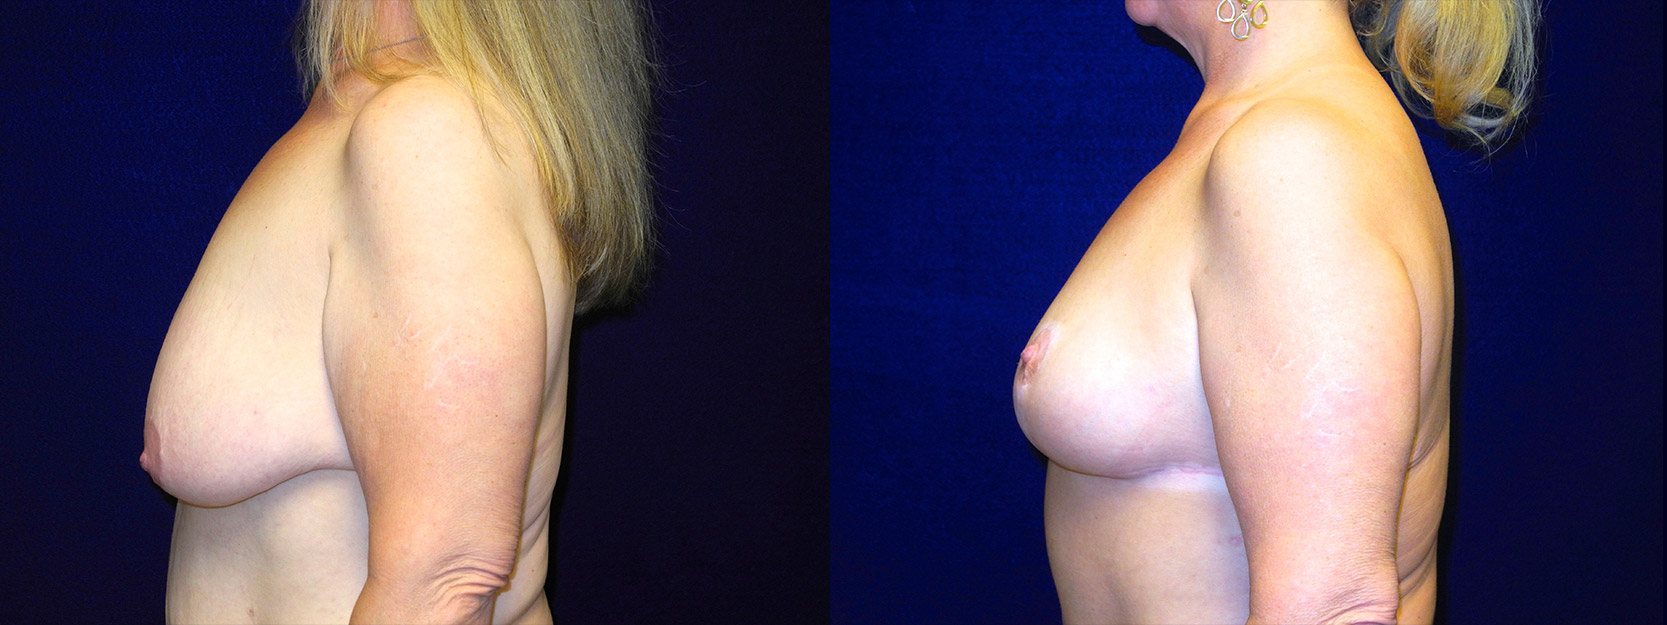 Left Profile View - Breast Lift After Massive Weight Loss